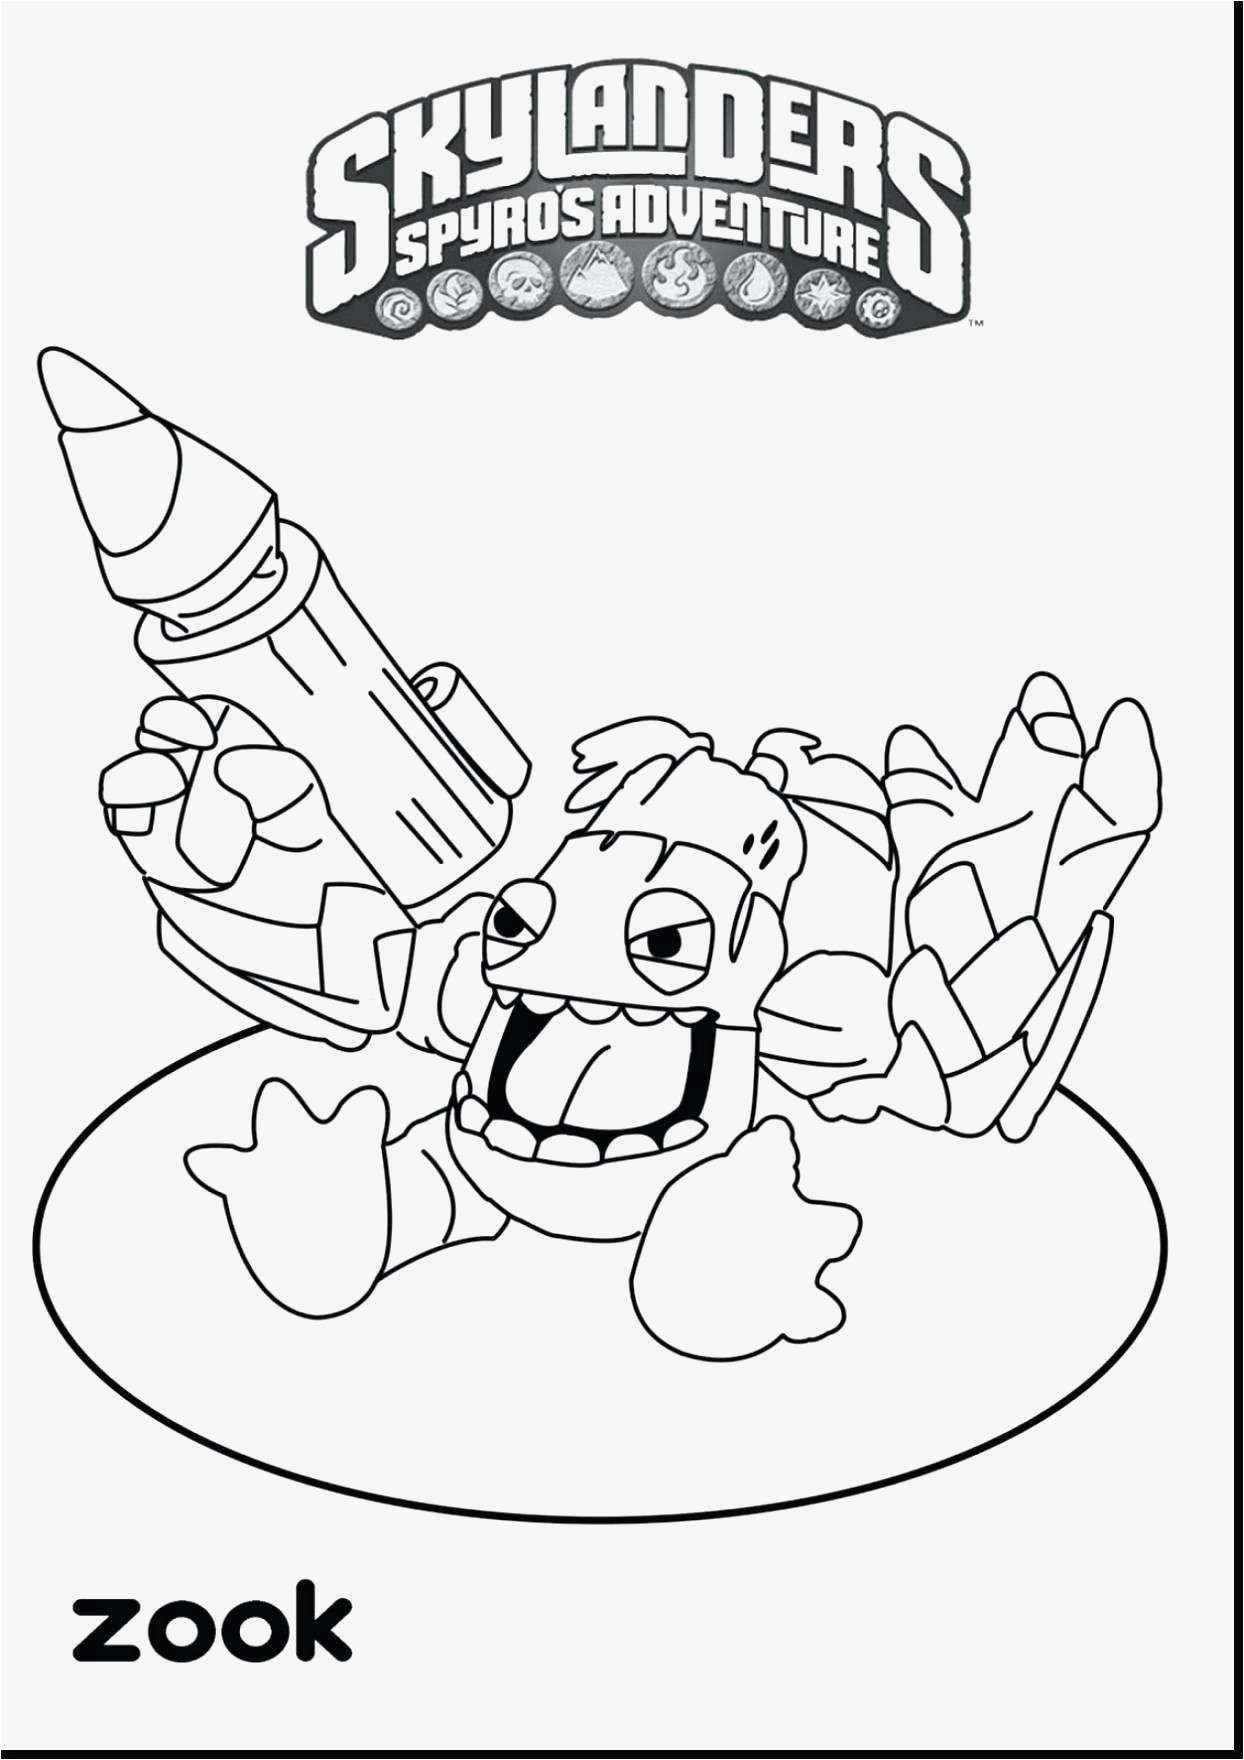 Bulldog Coloring Pages Printable  Gallery 8c - Free For Children